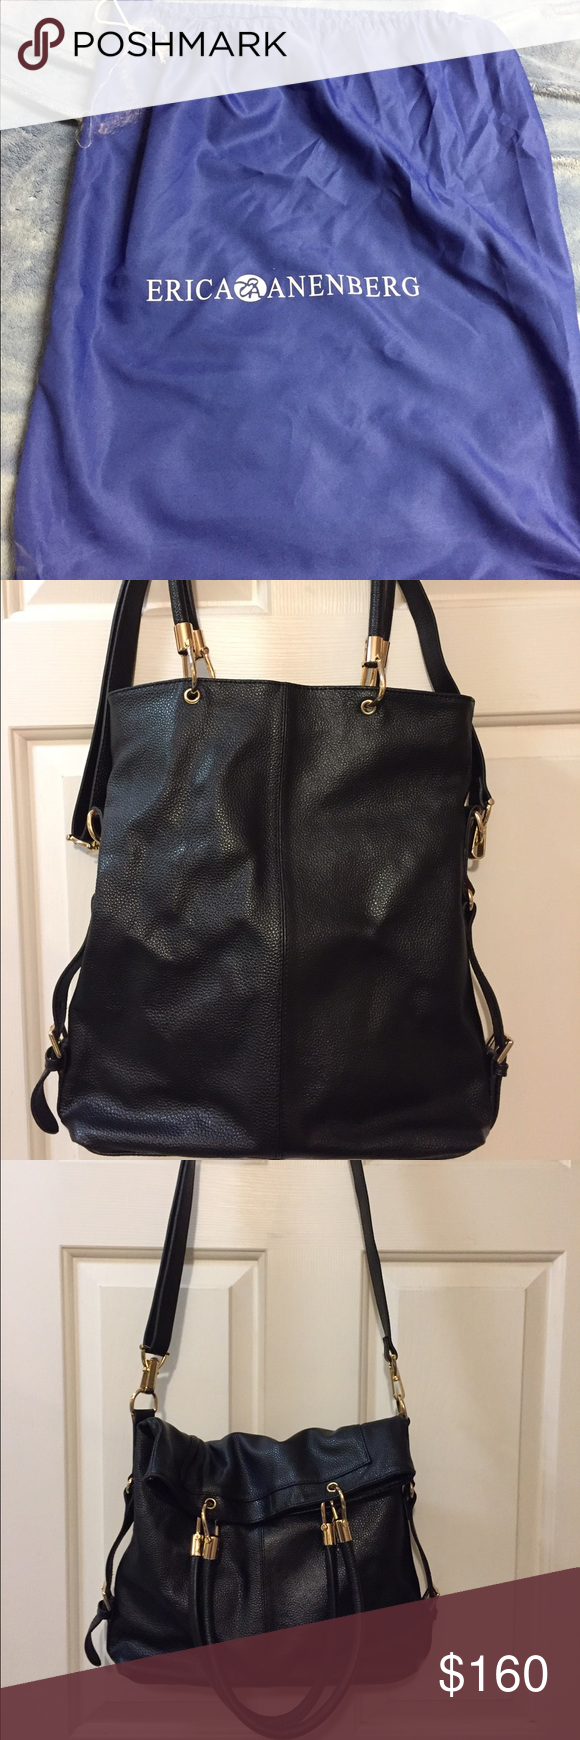 Gently used Erica Anenberg Sutton bag. Gently used bag. Top of bag lightly discolored (see picture). Dust bag included, drawstring frayed. Great condition and goes with all outfits. Bags Shoulder Bags